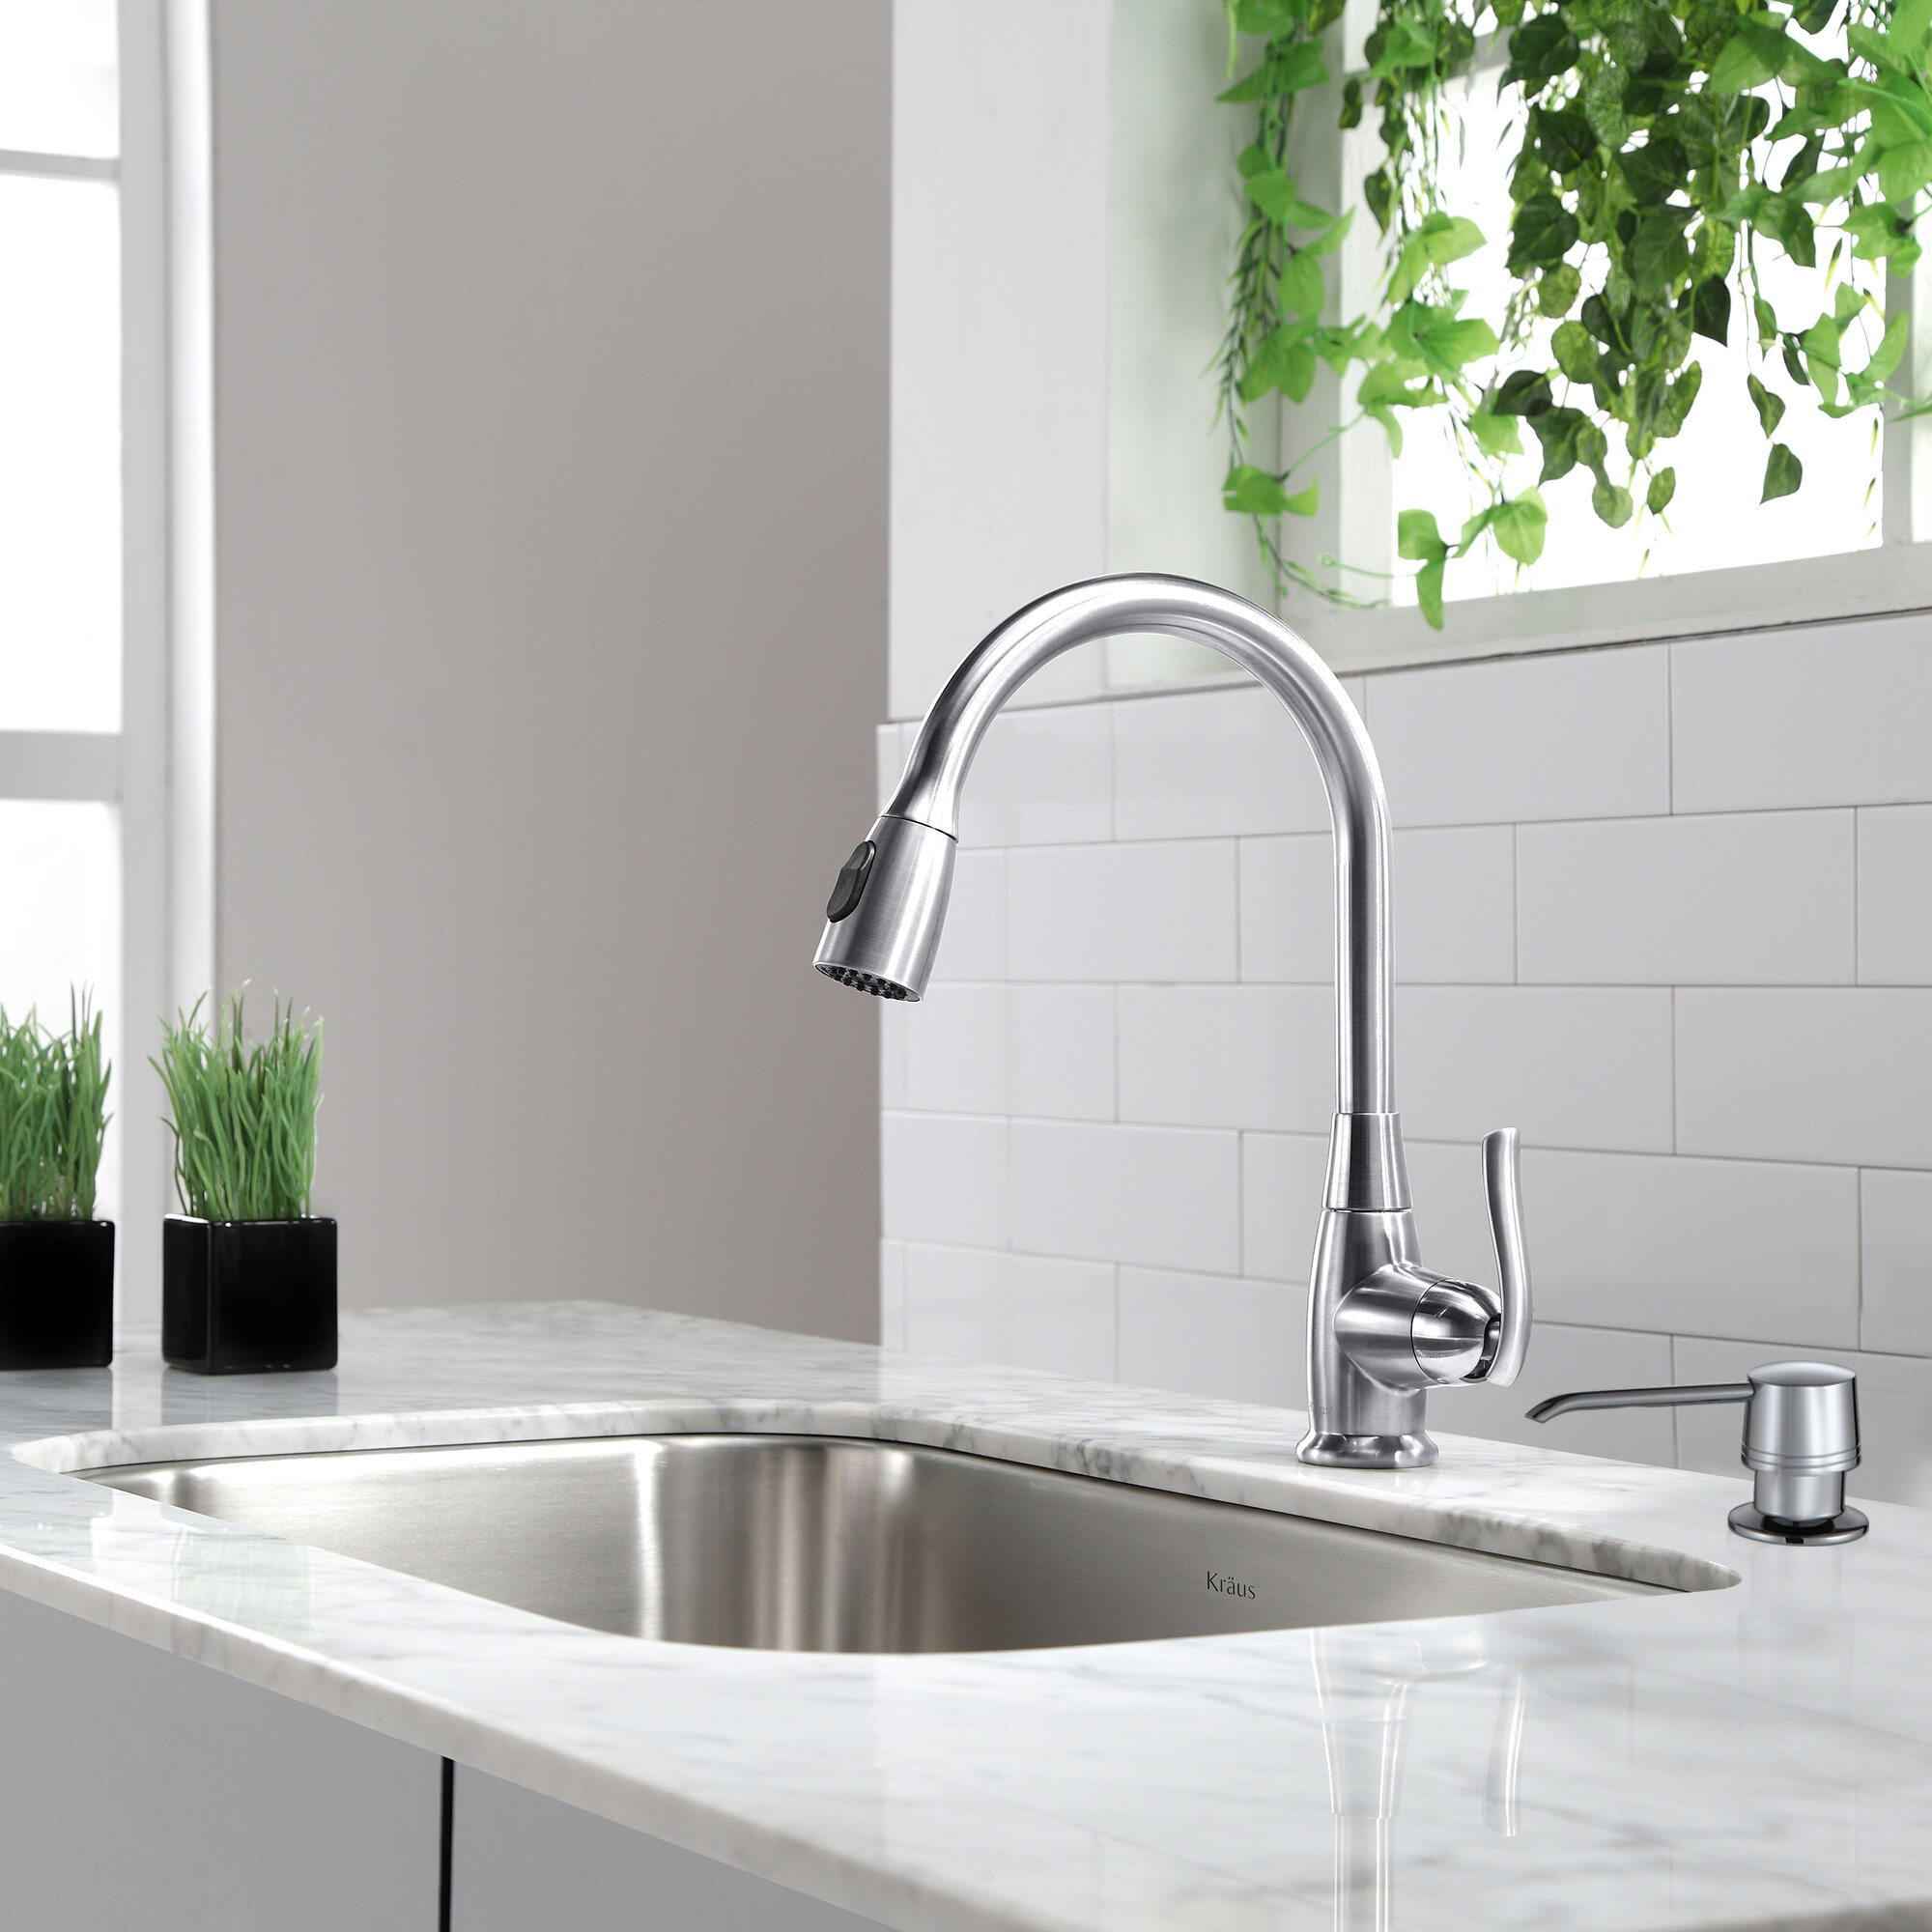 Kraus Premium Faucets Pull Down Single Handle Kitchen Faucet With Optional  Soap Dispenser U0026 Reviews | Wayfair